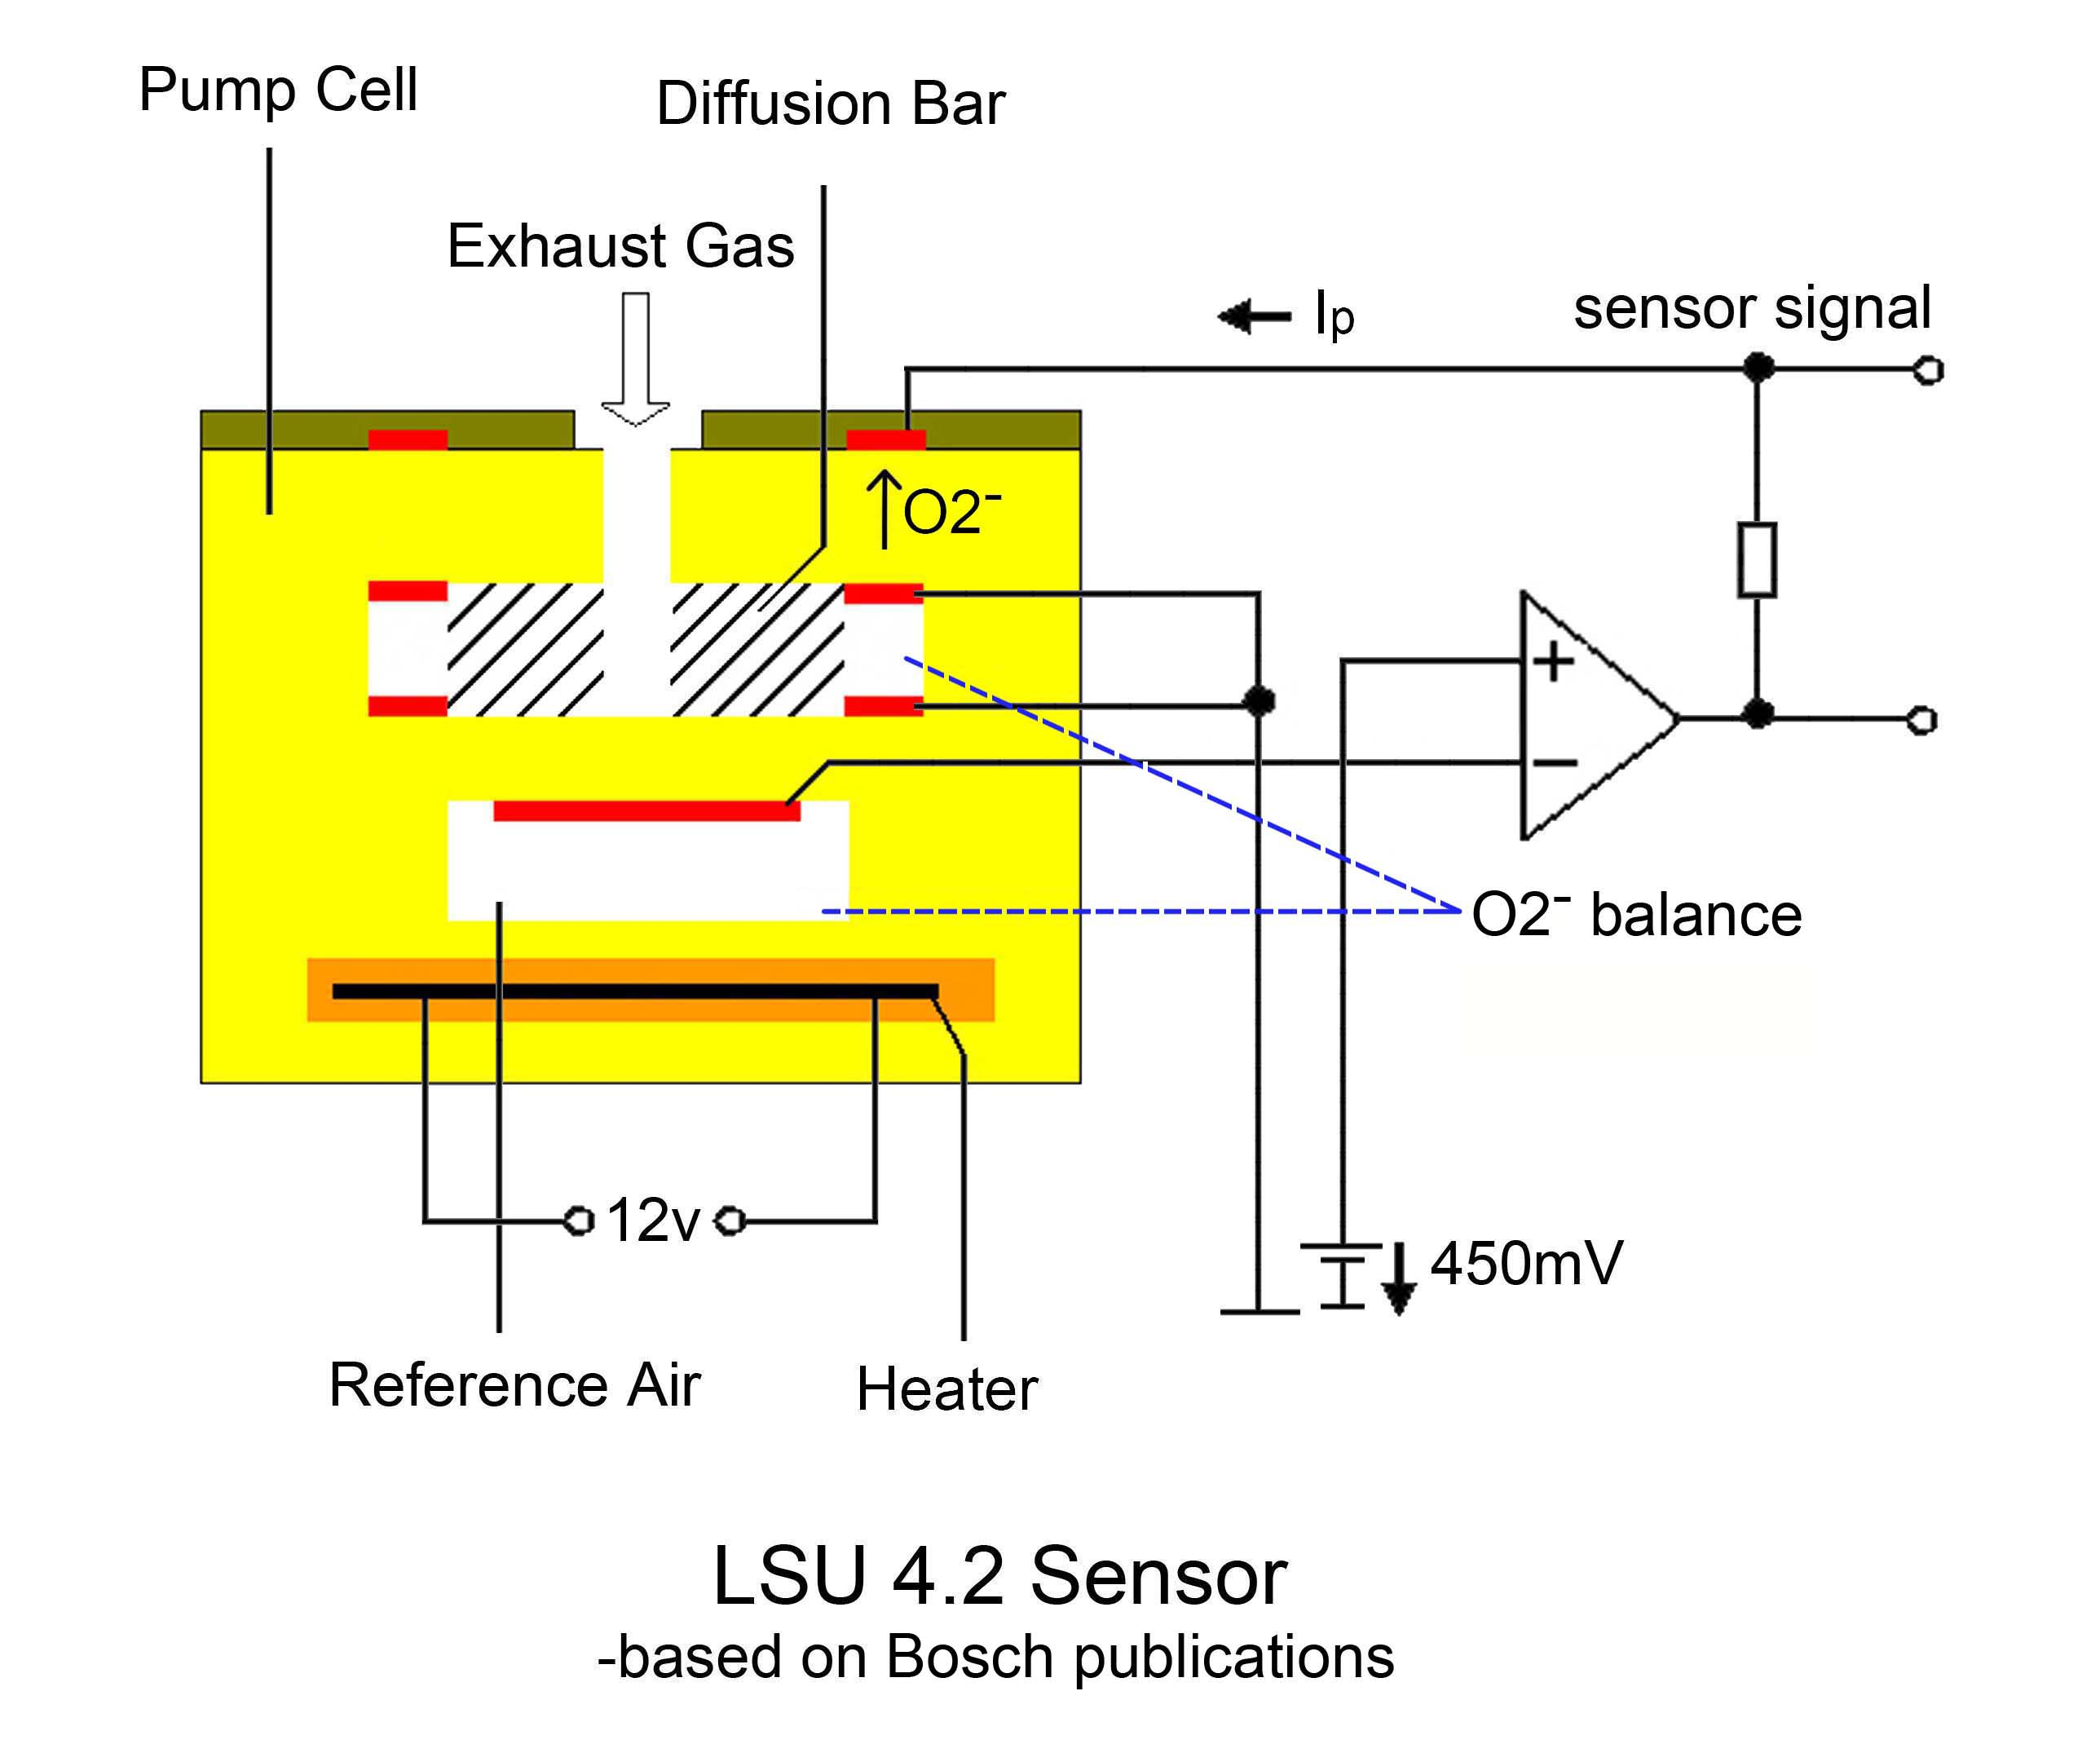 LSU4.2 bosch lsu 4 9 is superior to lsu 4 2 sensors ecotrons apsx wideband wiring diagram at gsmx.co